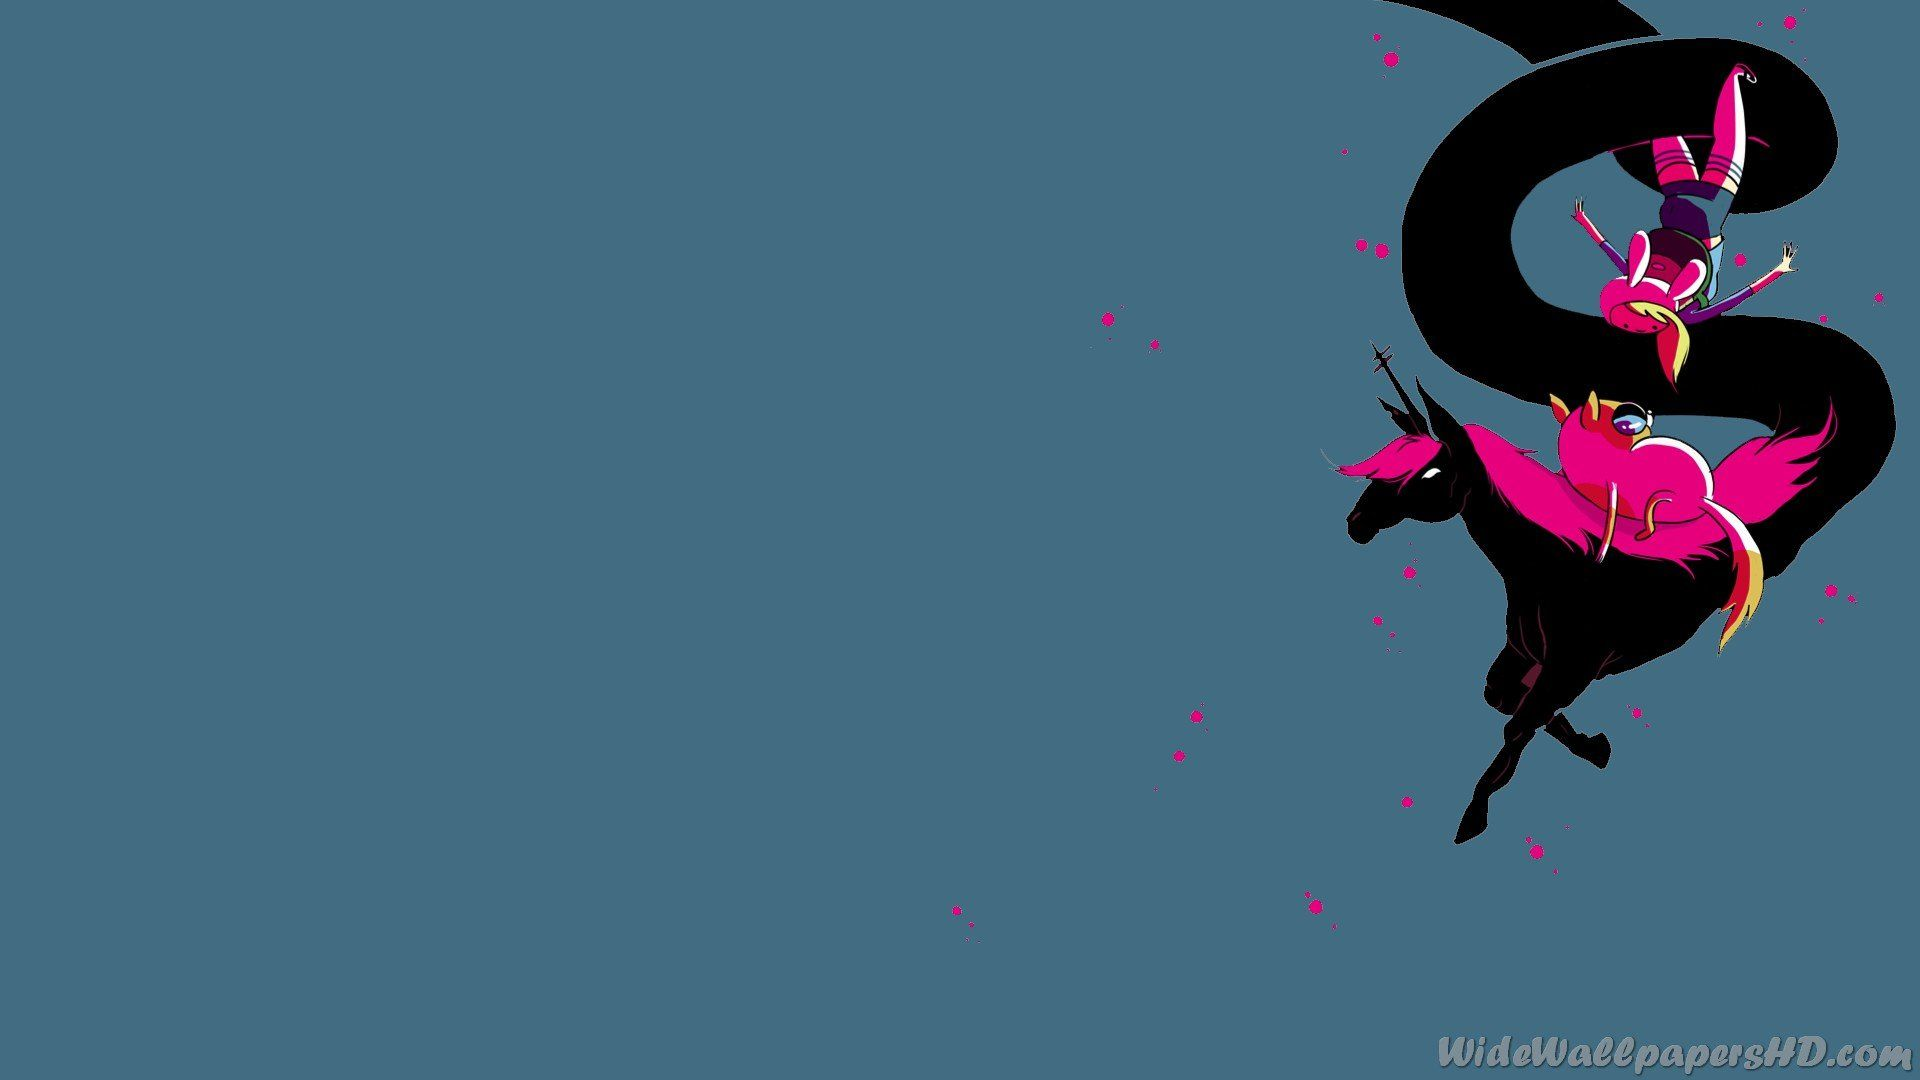 Wallpapers Adventure Time Group 1280x1024 Wallpaper Hd 38